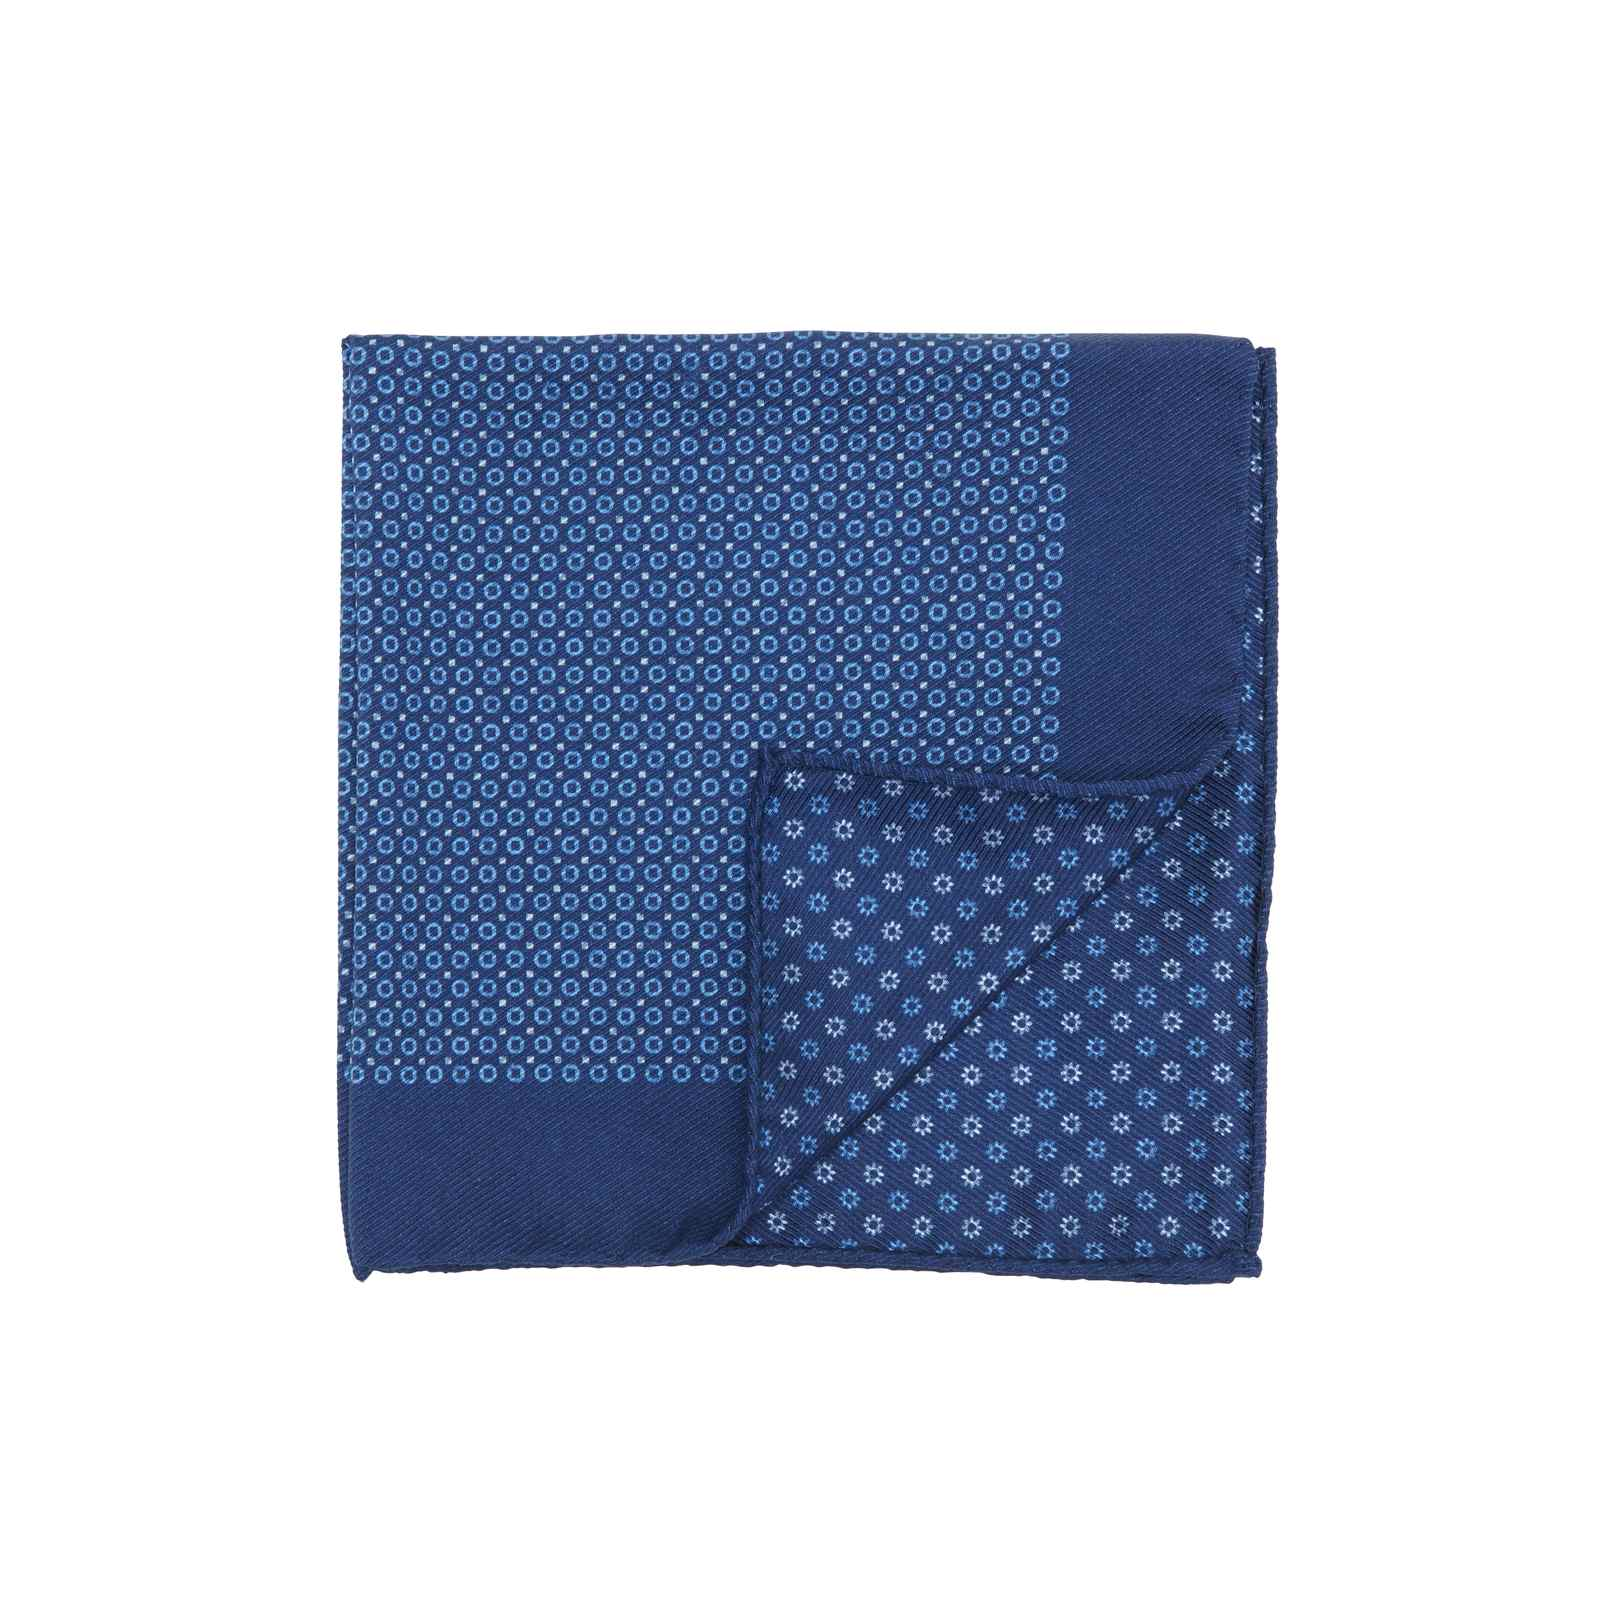 Navy Pocket Square with Small Light Blue Circles